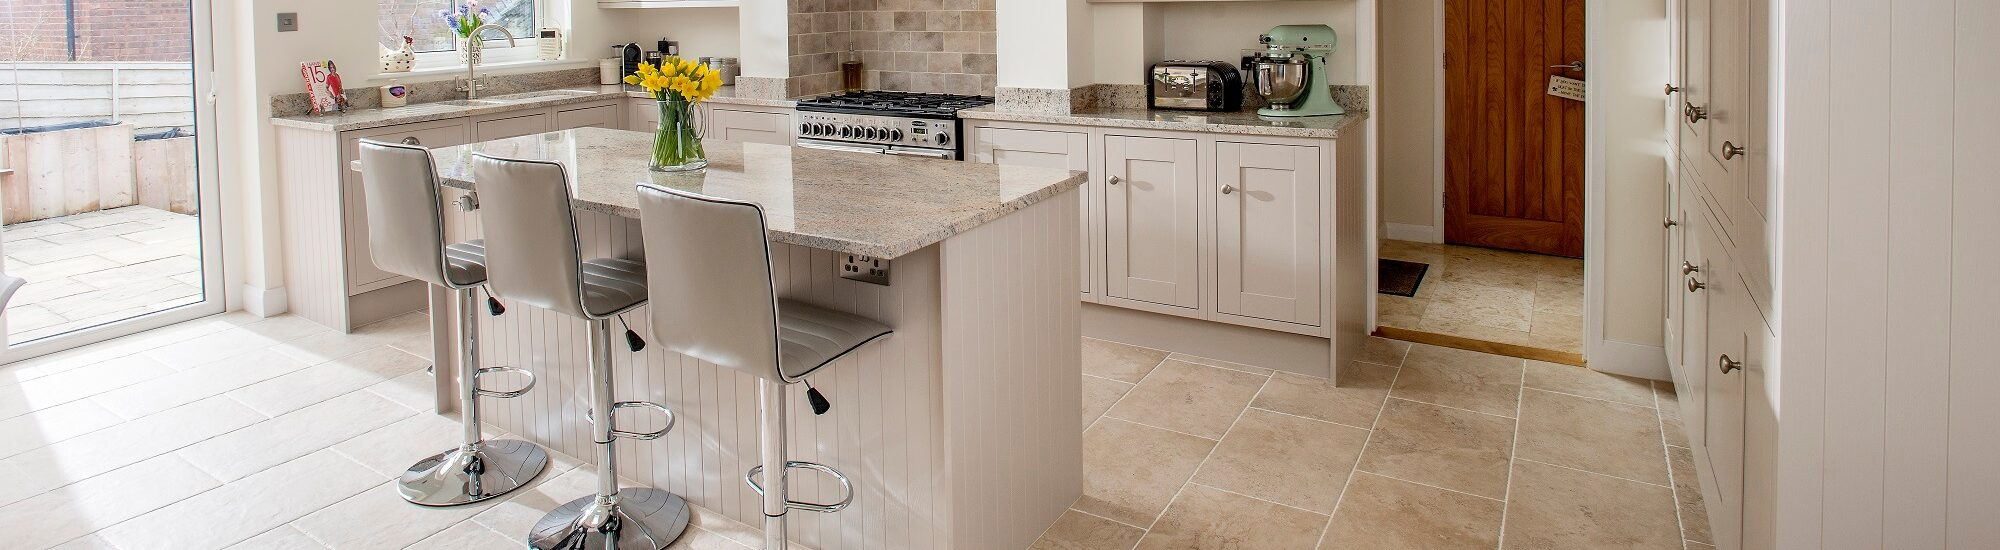 Sheraton Lissa Oak painted kitchen in taupe finish. Complete with granite worktops and upstands